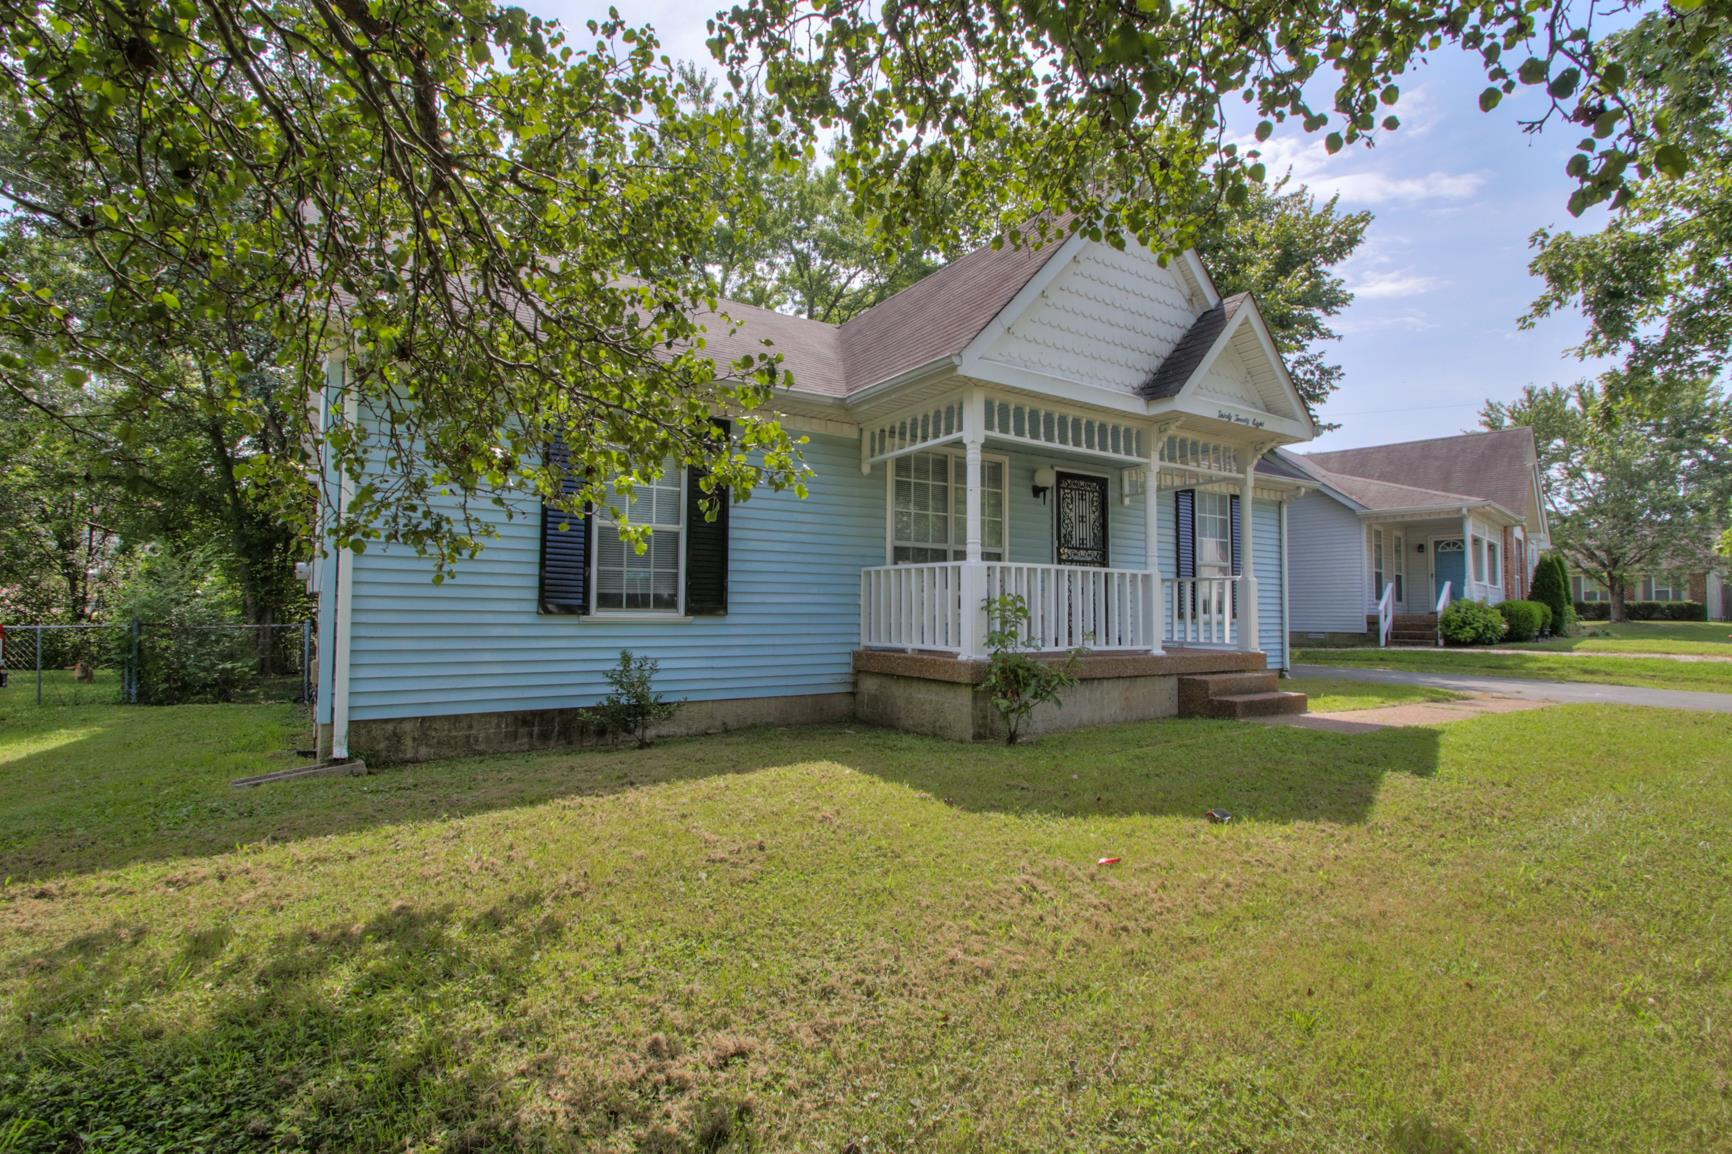 3028 Towne Valley Rd, Nashville-Antioch in Davidson County County, TN 37013 Home for Sale